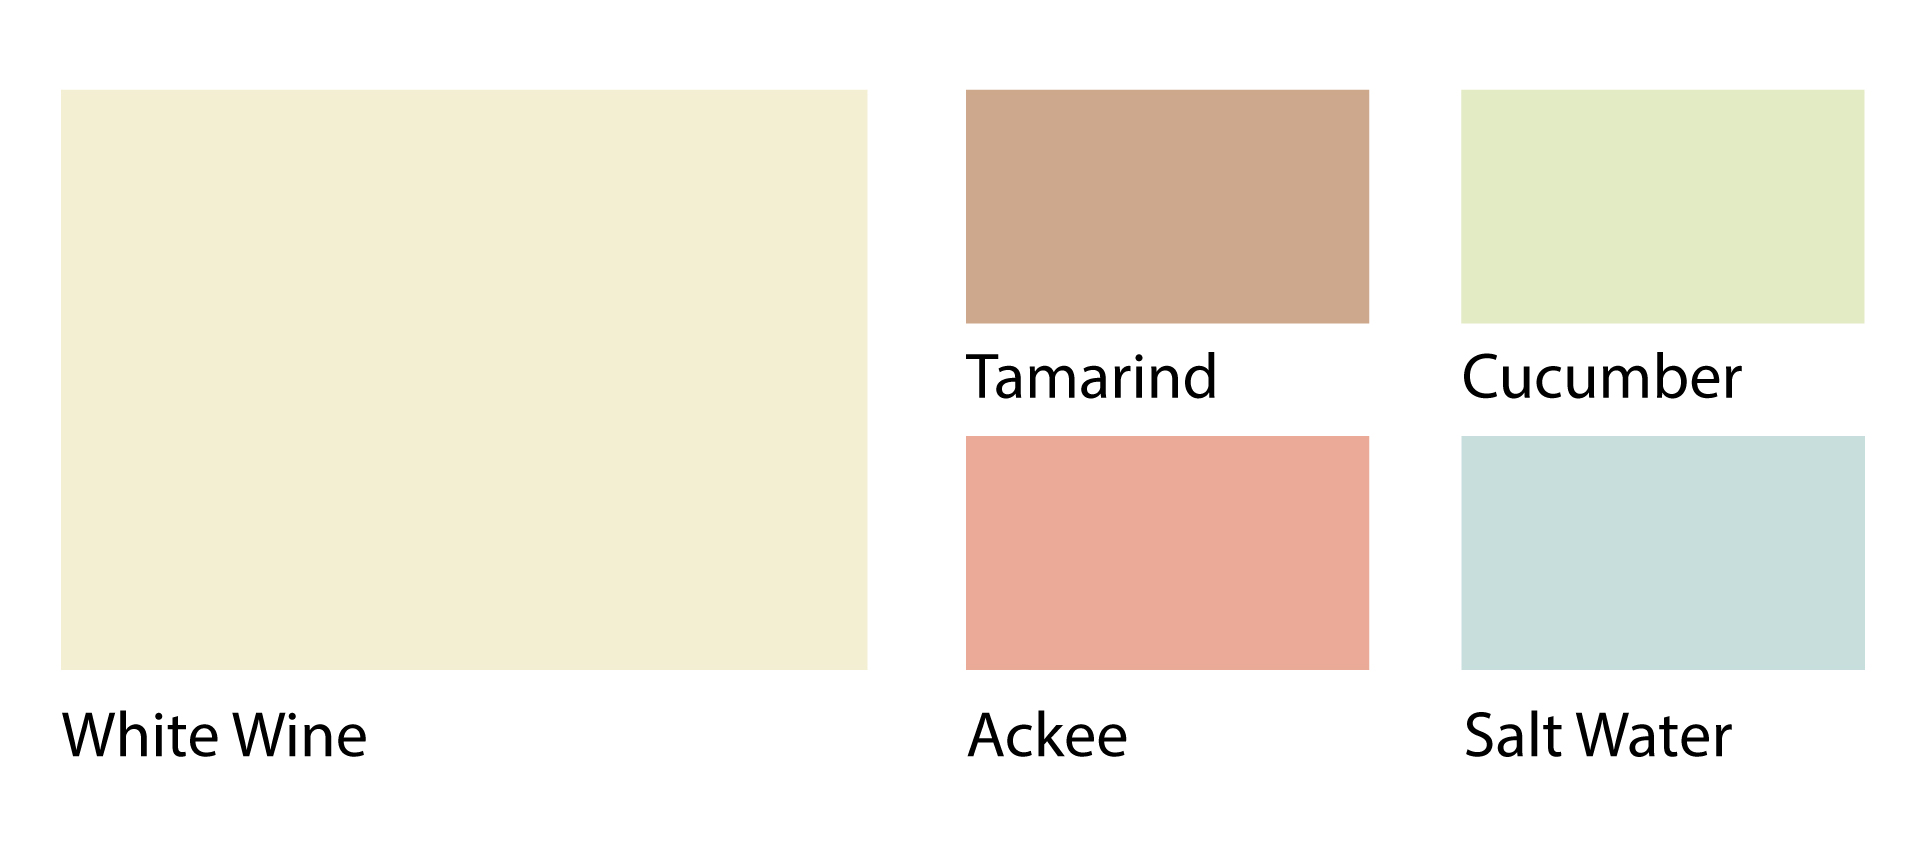 Yardy's color palette reflects elements of Jamaican cuisine and culture. All colors are pastel tones as to allow additional elements to standout more.